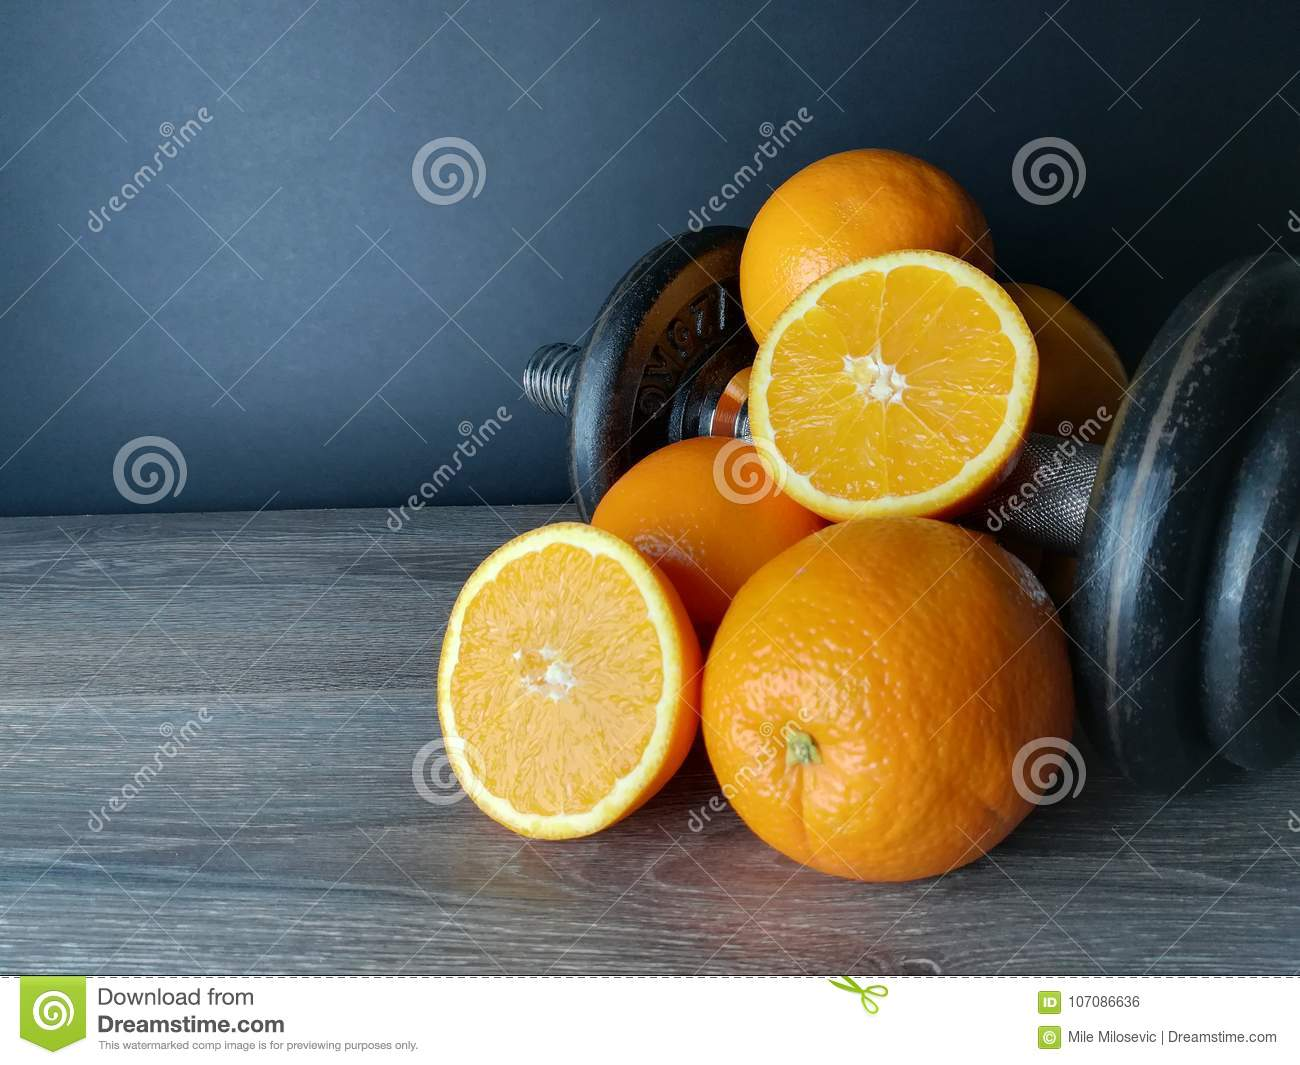 Orange with weights, health and fitness